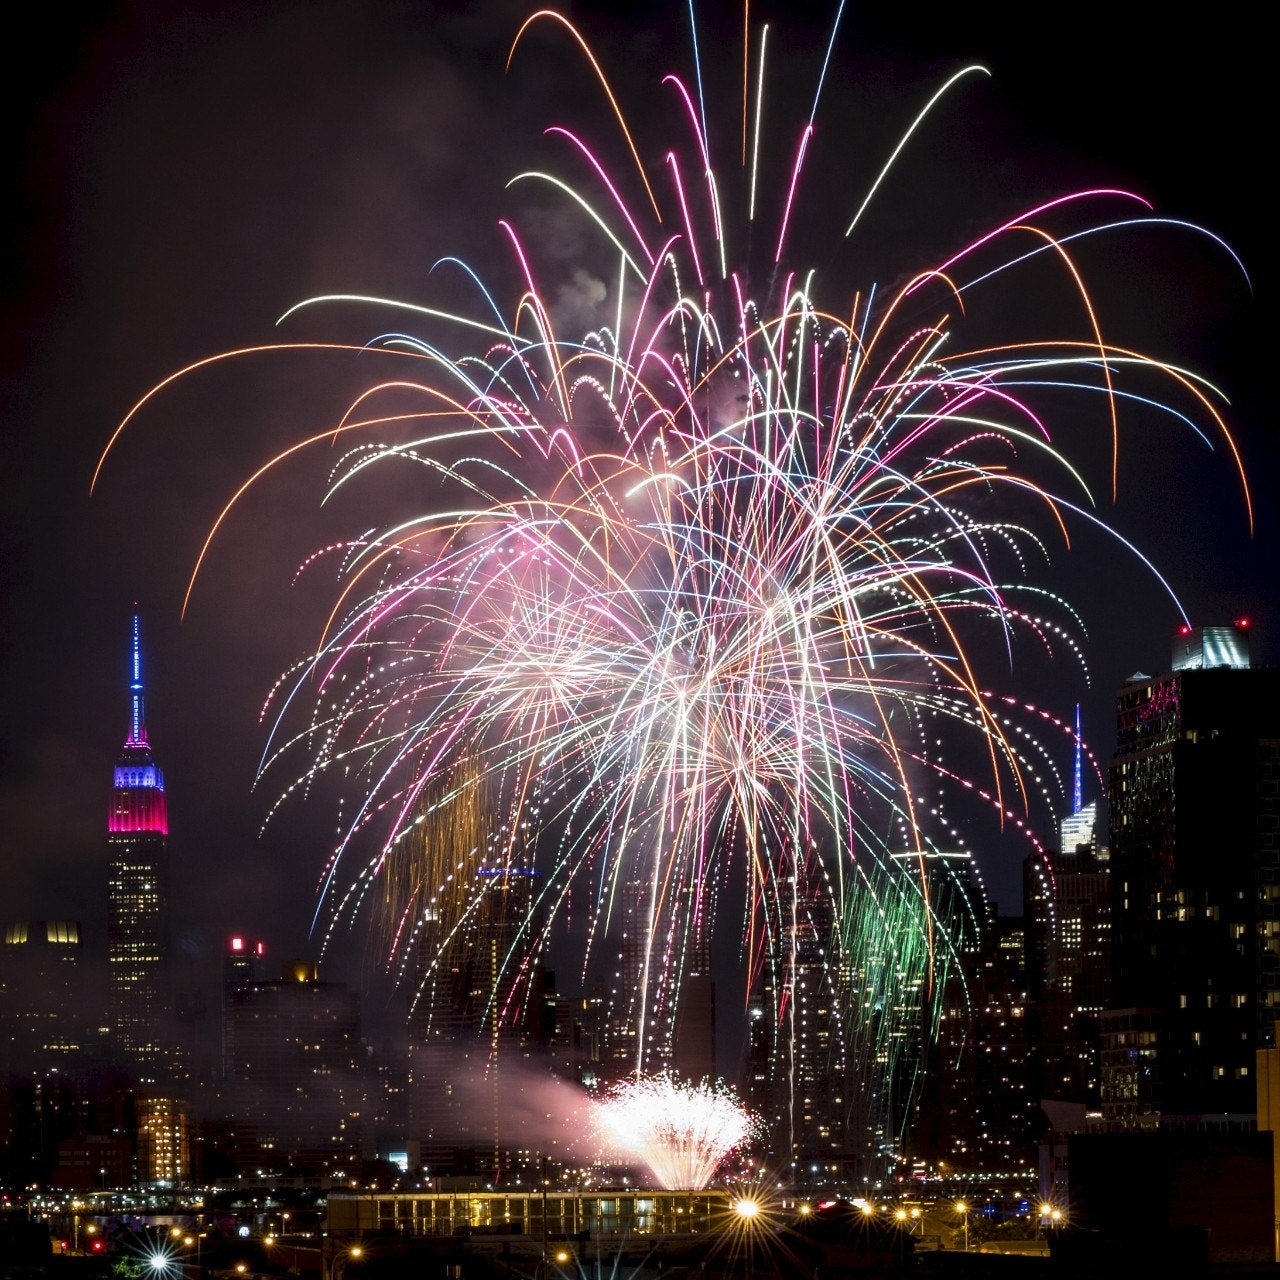 Macy's Fourth of July Fireworks tap tech to light up smartphone screens | Fox News